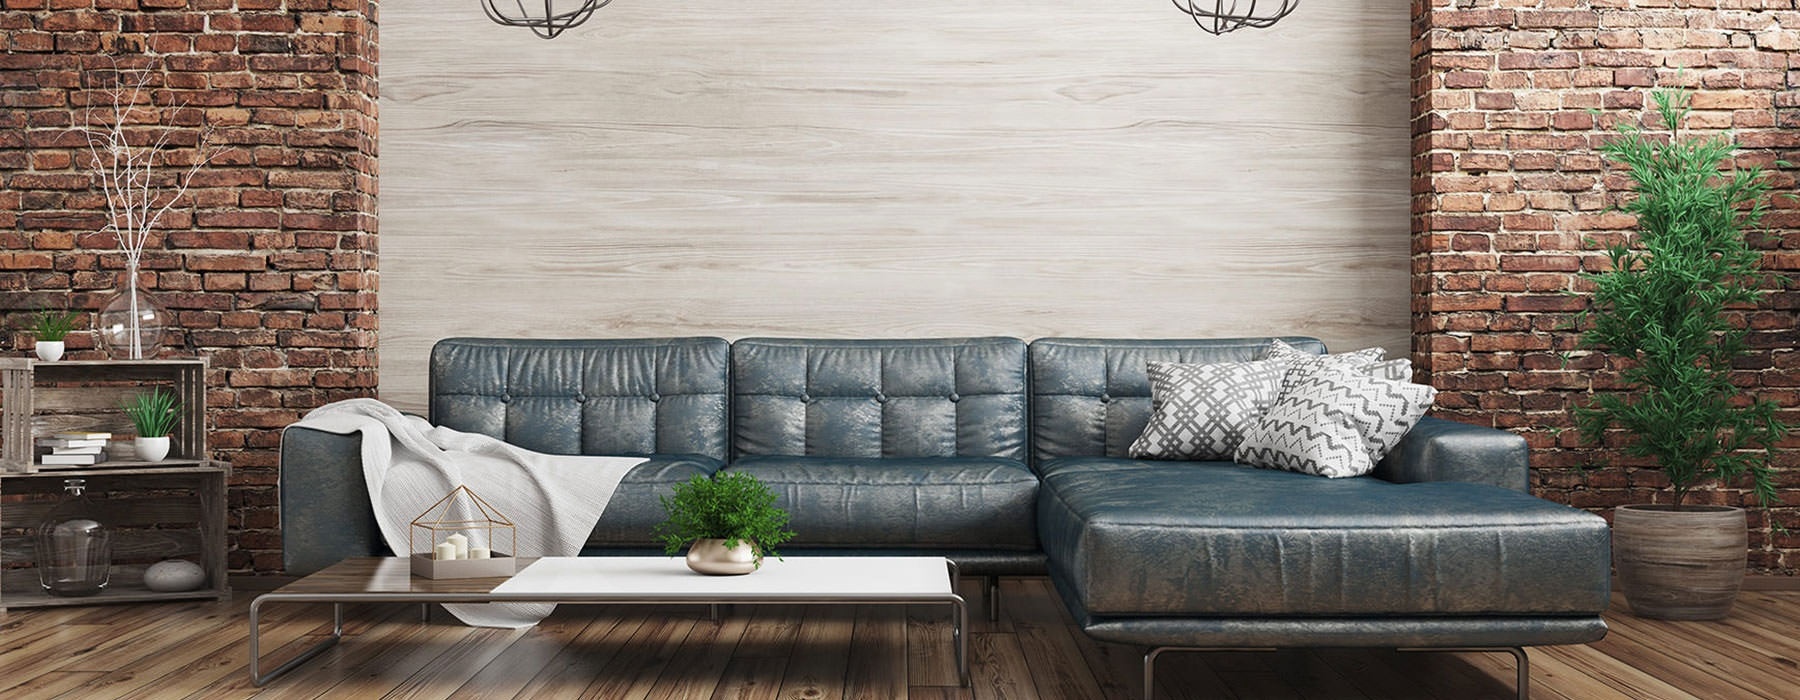 spacious couch in a large room with brick accents